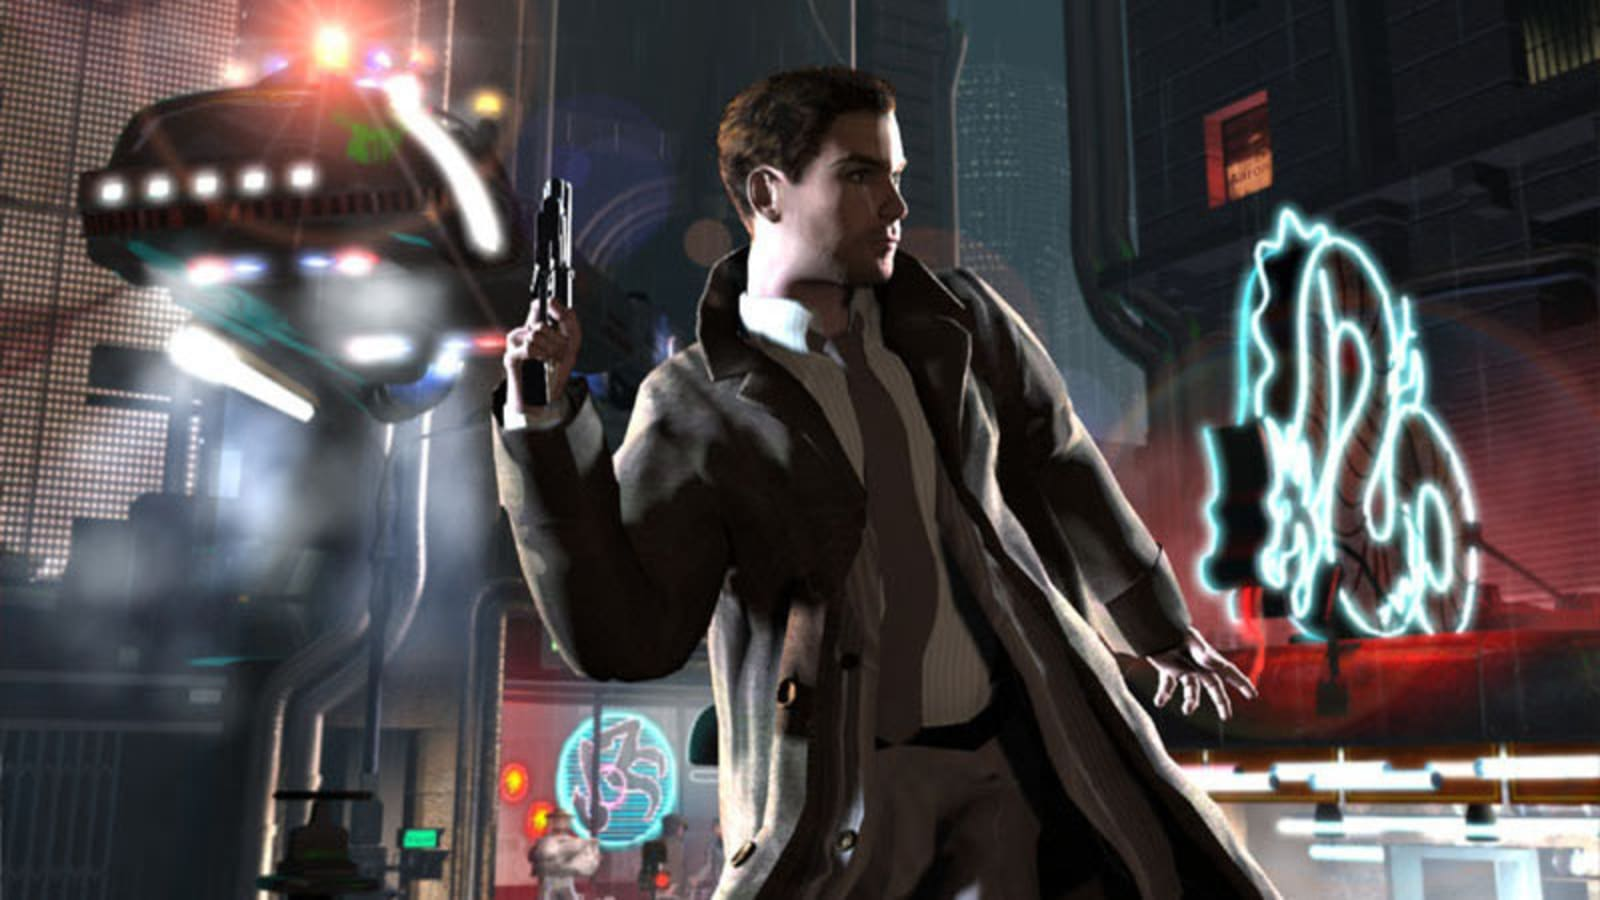 Westwood's 1997 'Blade Runner' is playable again on PC